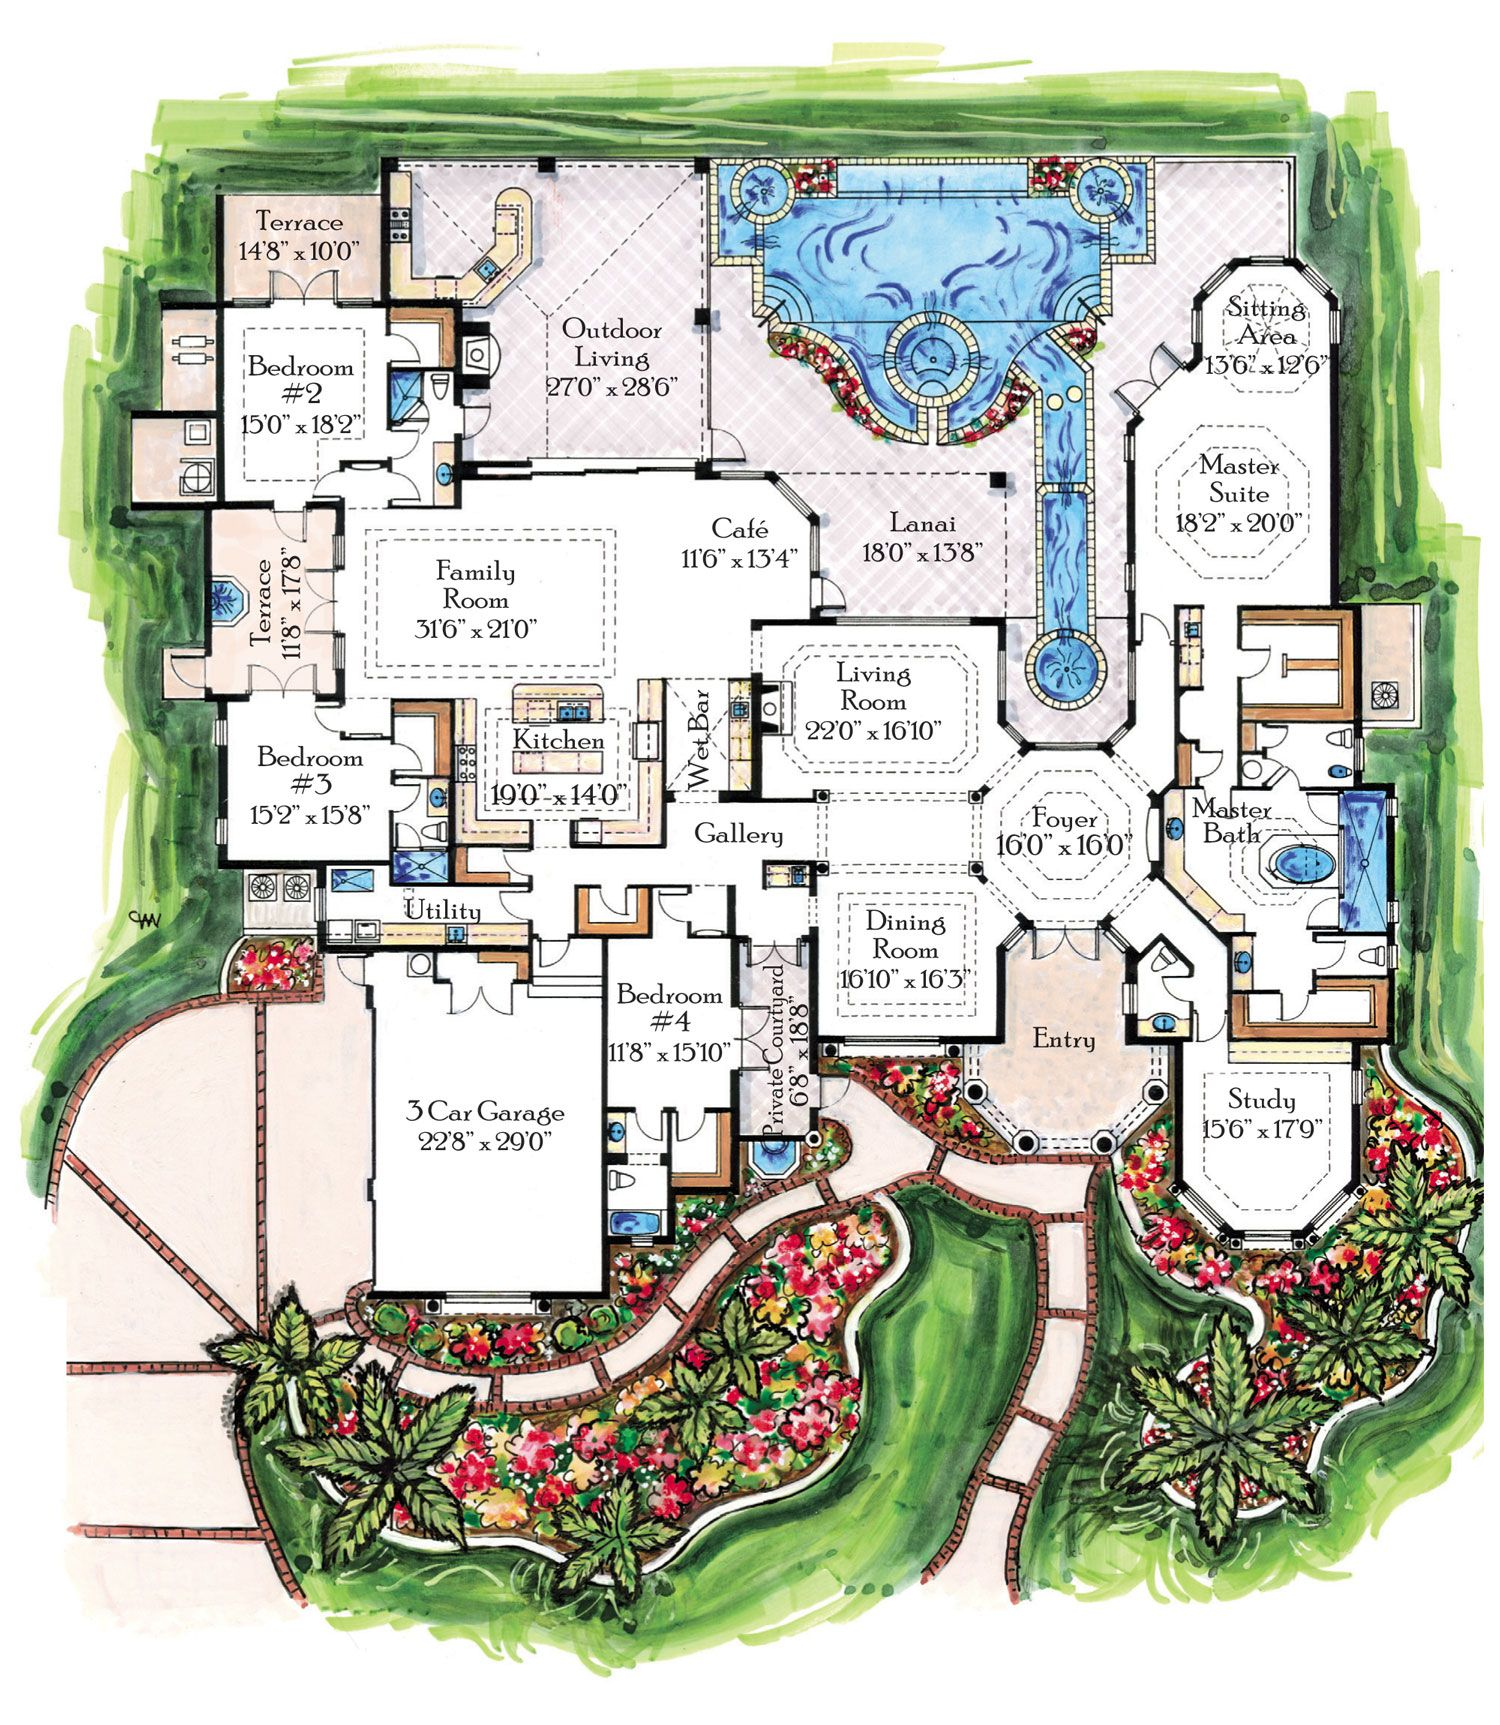 Luxury Homes and Plans Designs for Traditional CastlesVillas – Luxury Estate Home Floor Plans